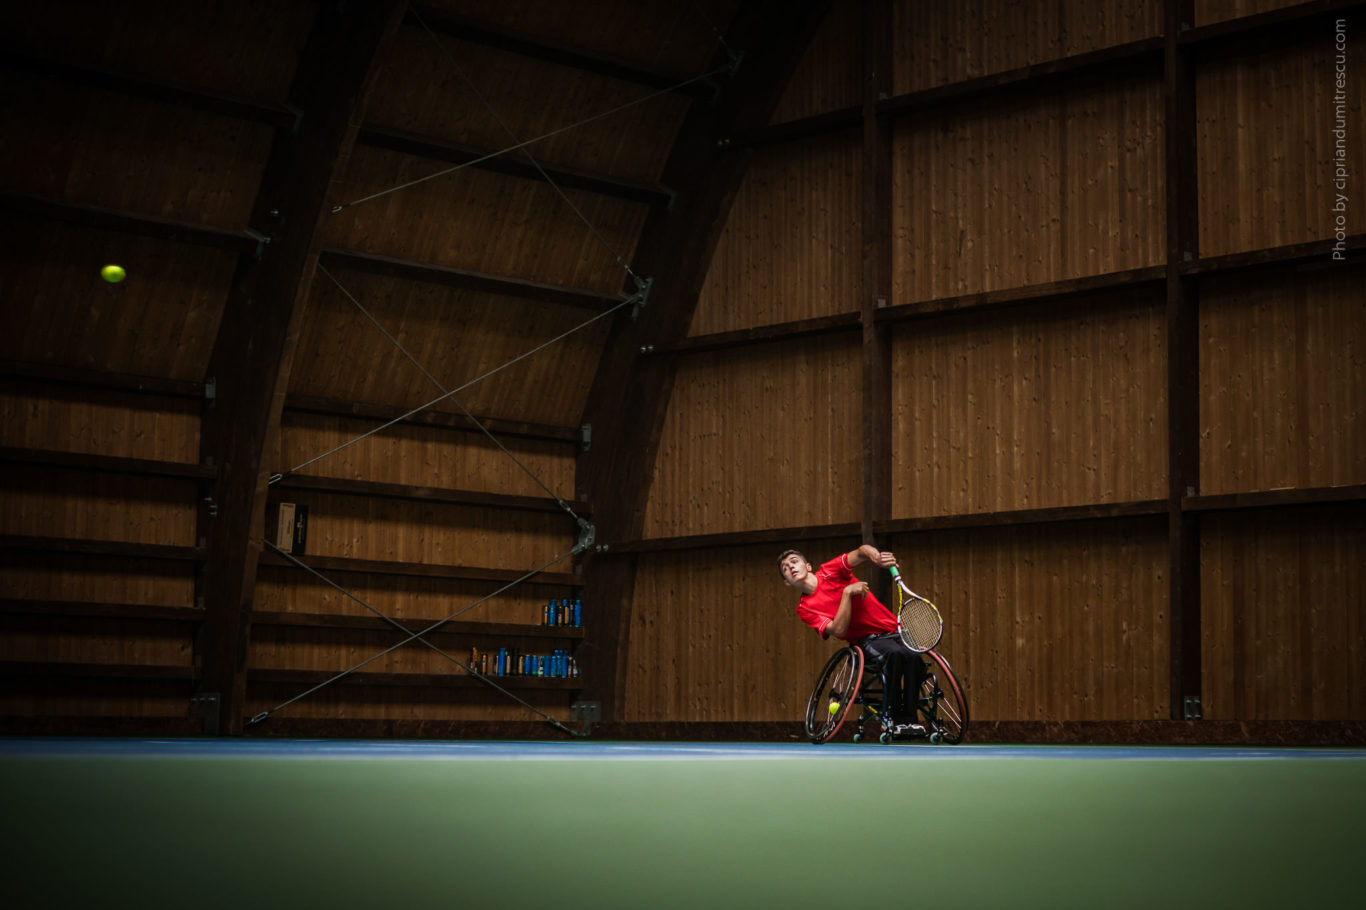 006-Bucharest-Open-Wheelchair-2016-Day-One-Photographer-Ciprian-Dumitrescu